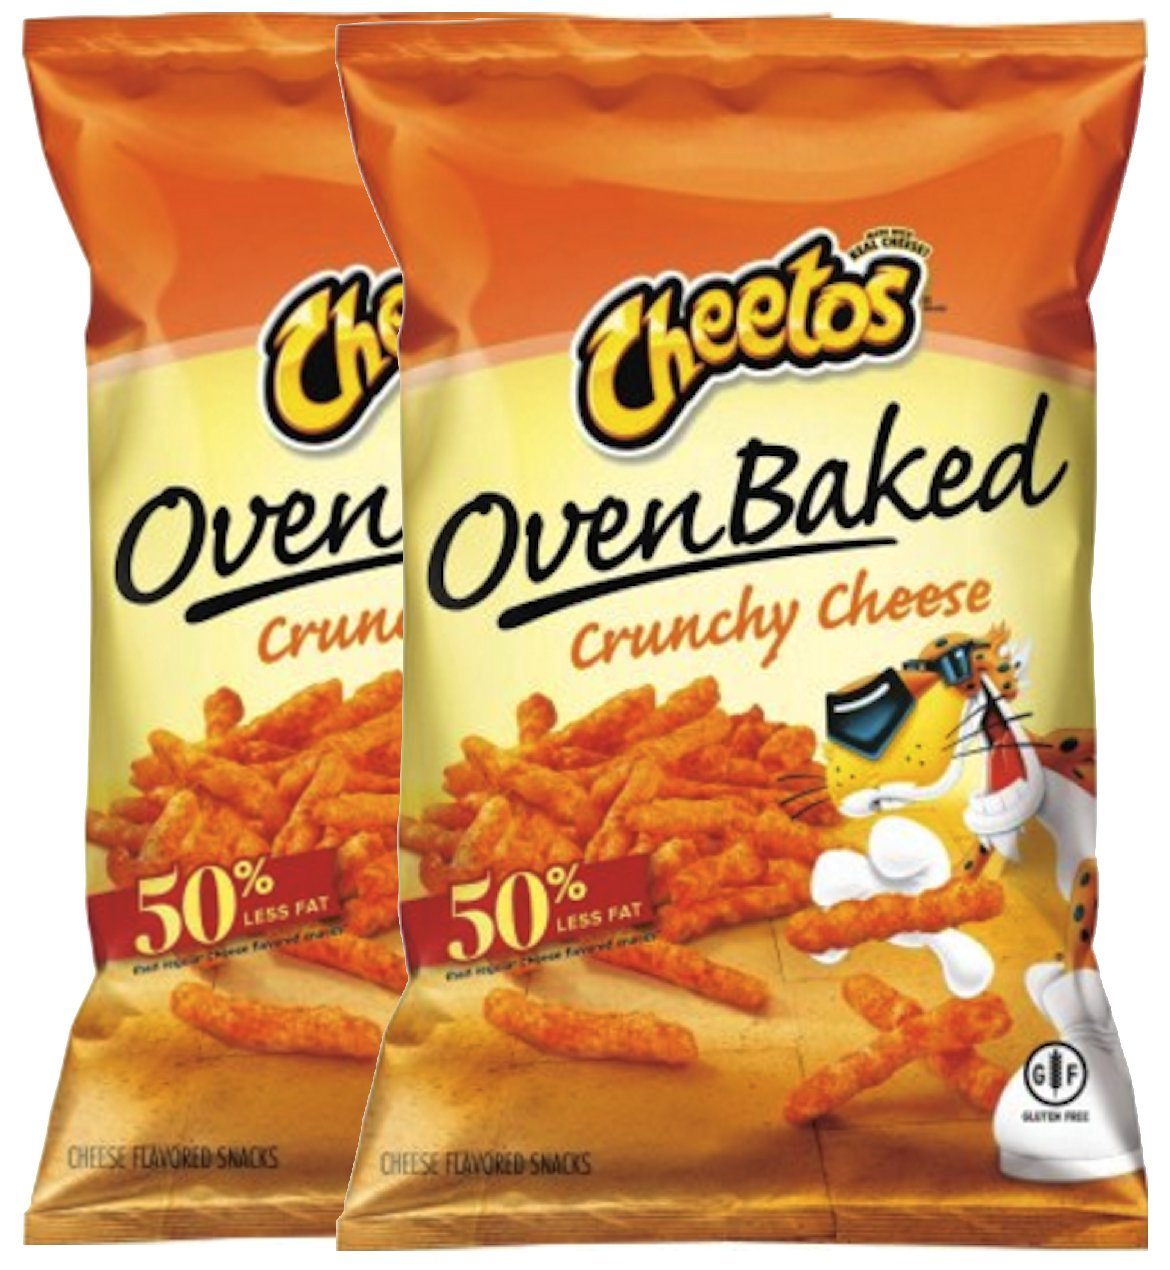 Cheetos Over Baked Crunchy Cheese Gluten Free Snacks 7.63 Oz Snack Care Package for College, Military, Sports (2)